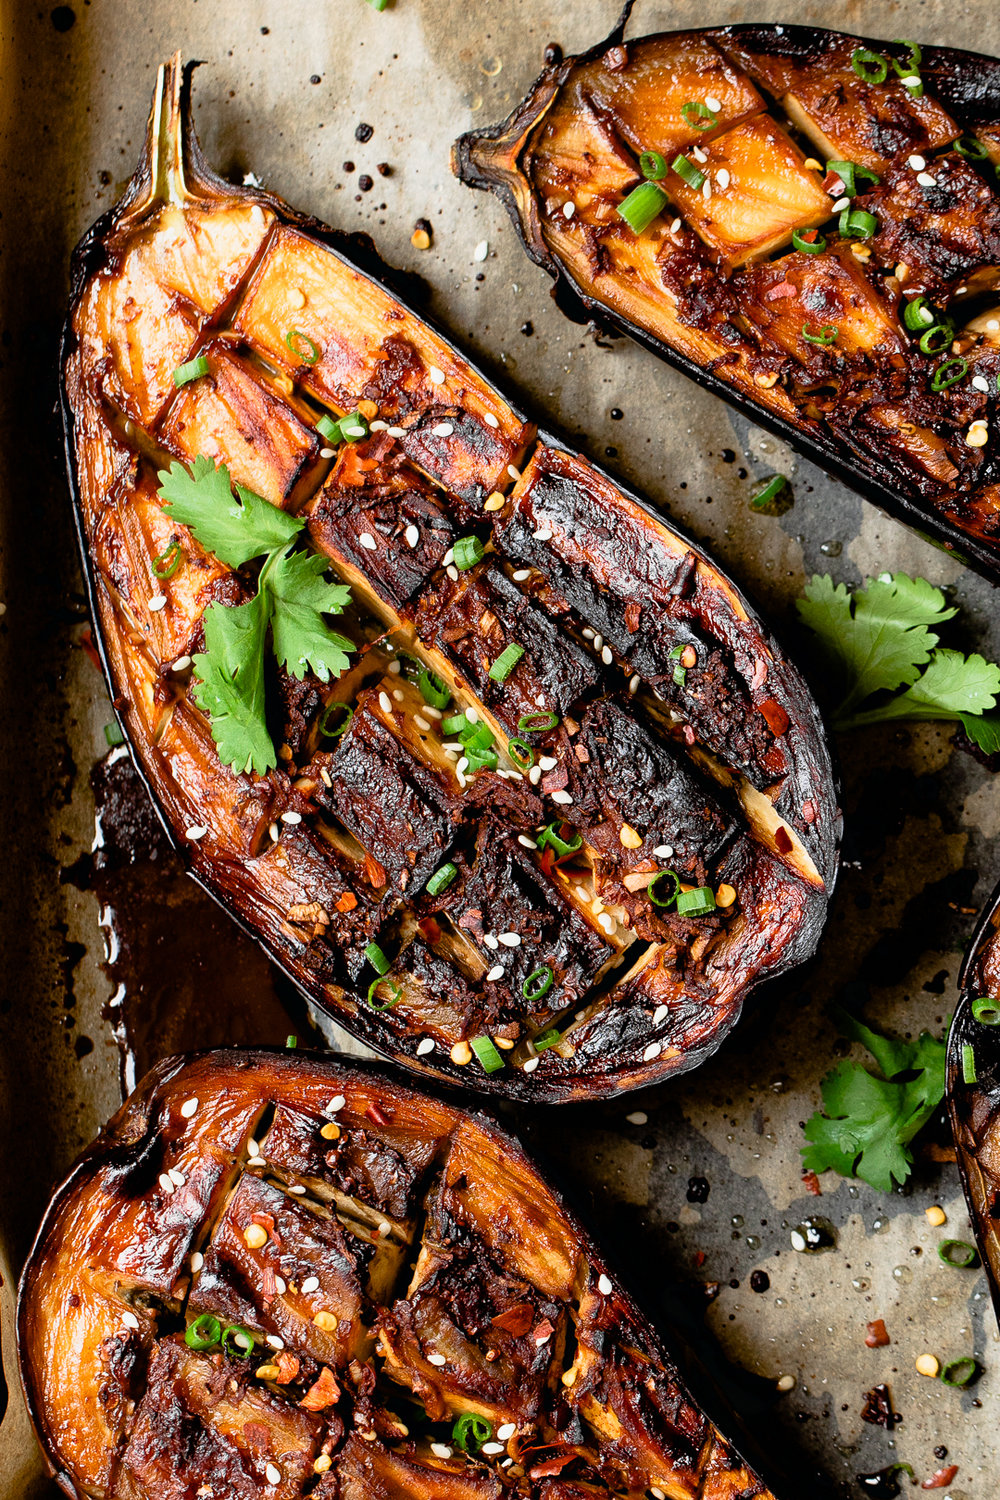 Ginger_Miso_Glazed_Eggplant2_by_Jordan_Pie_Nutritionist_Photographer-1.jpg